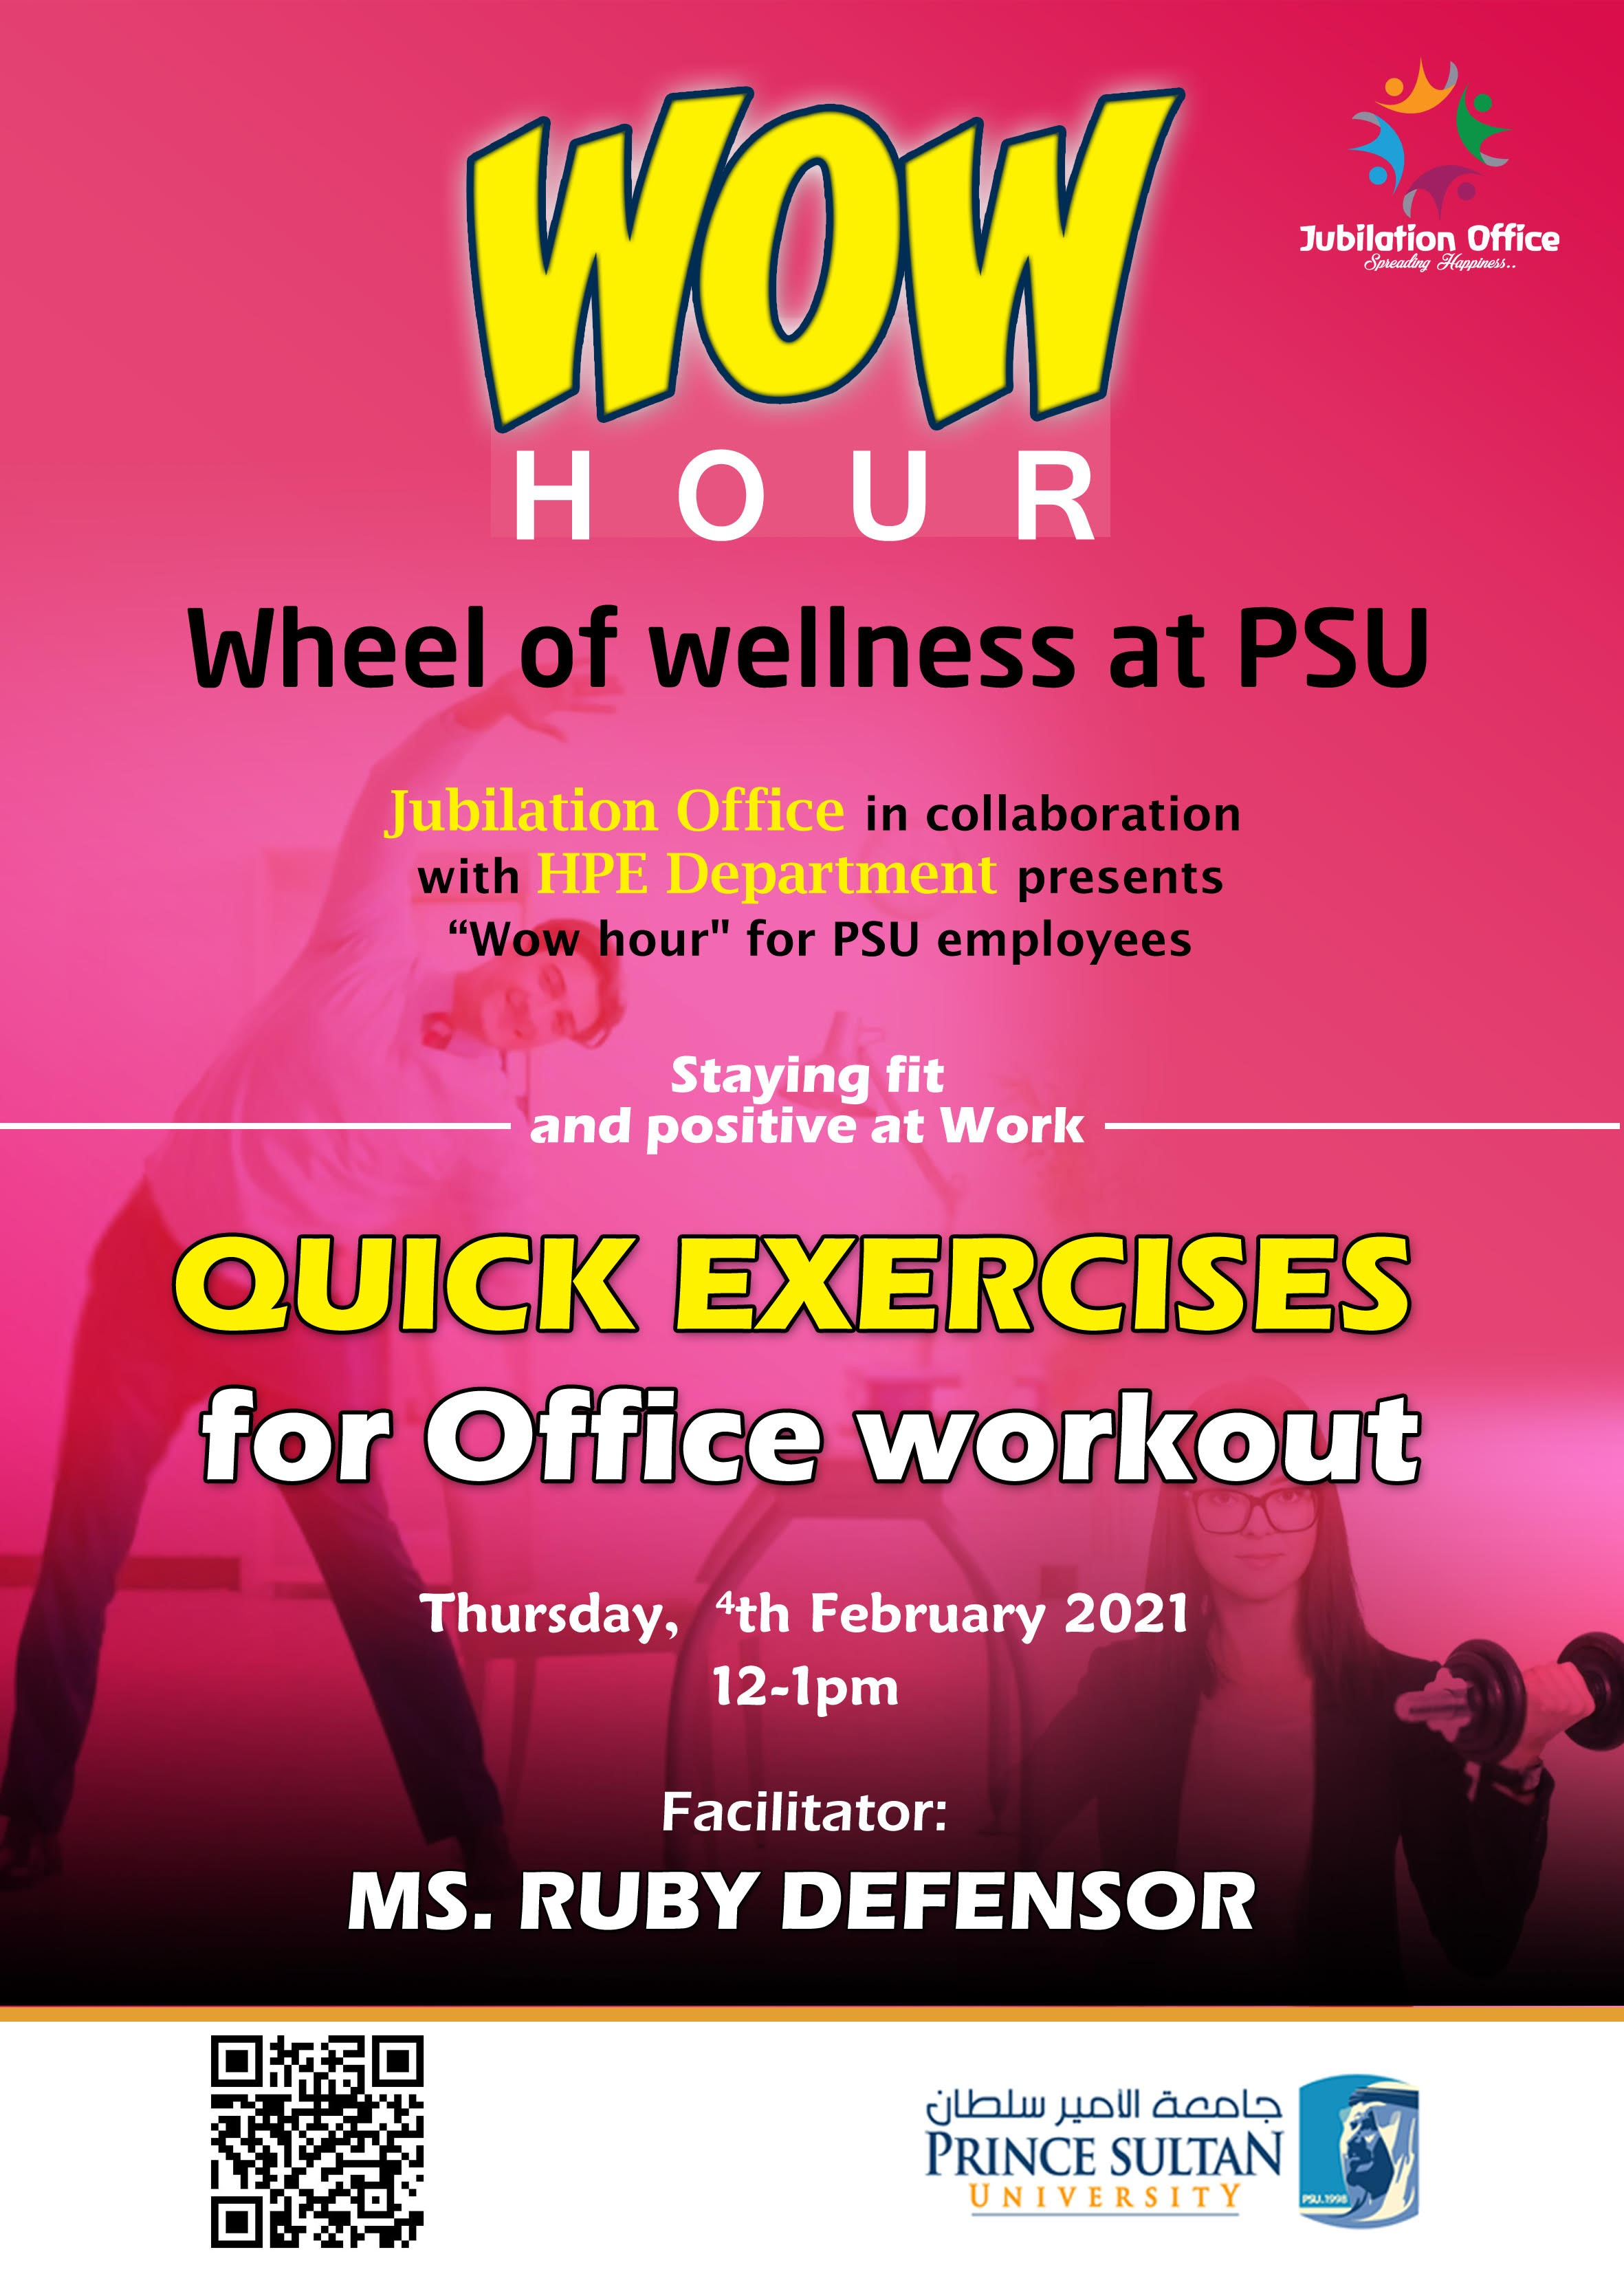 Quick Exercises for office workout